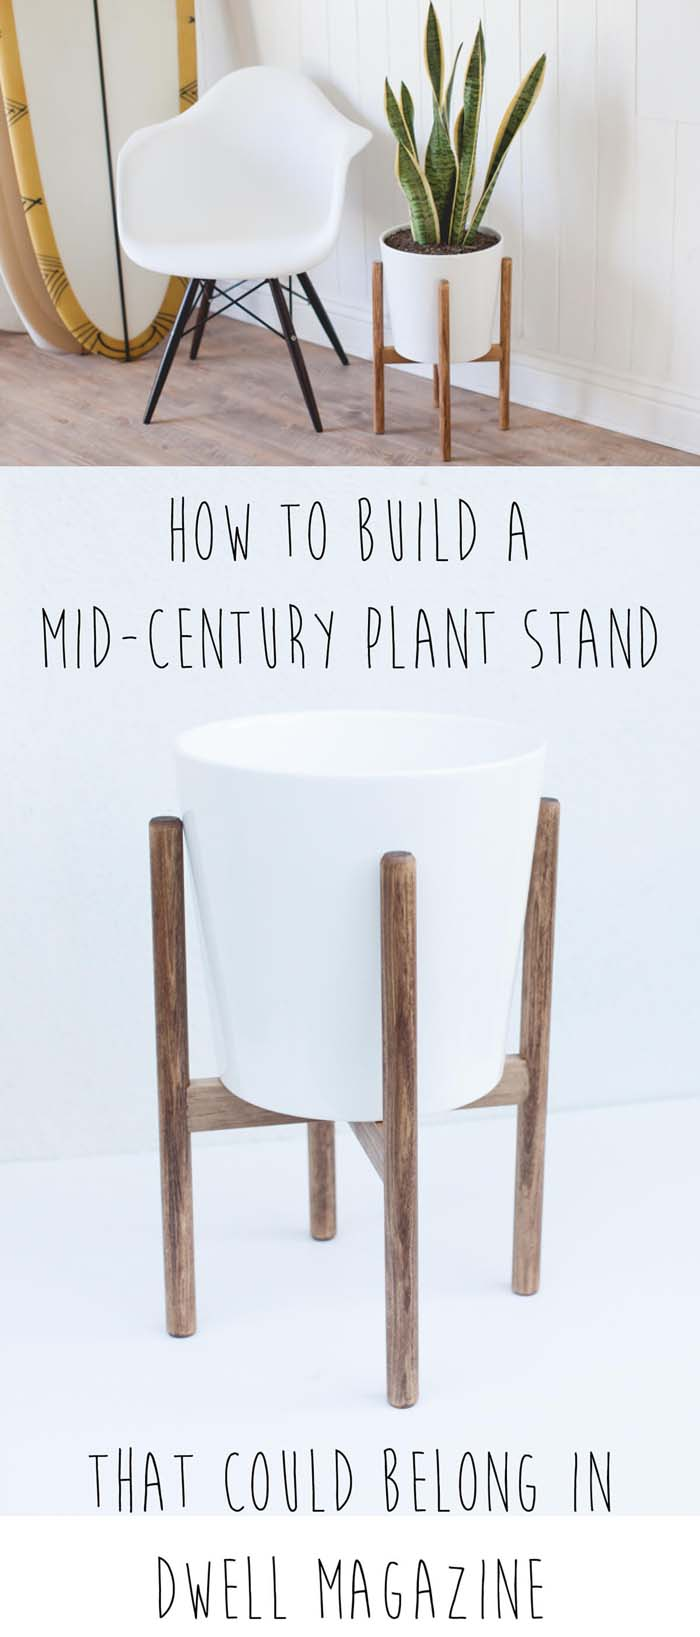 How to Build a Midcentury-Inspired Plant Stand #diy #wood #crafts #decorhomeideas